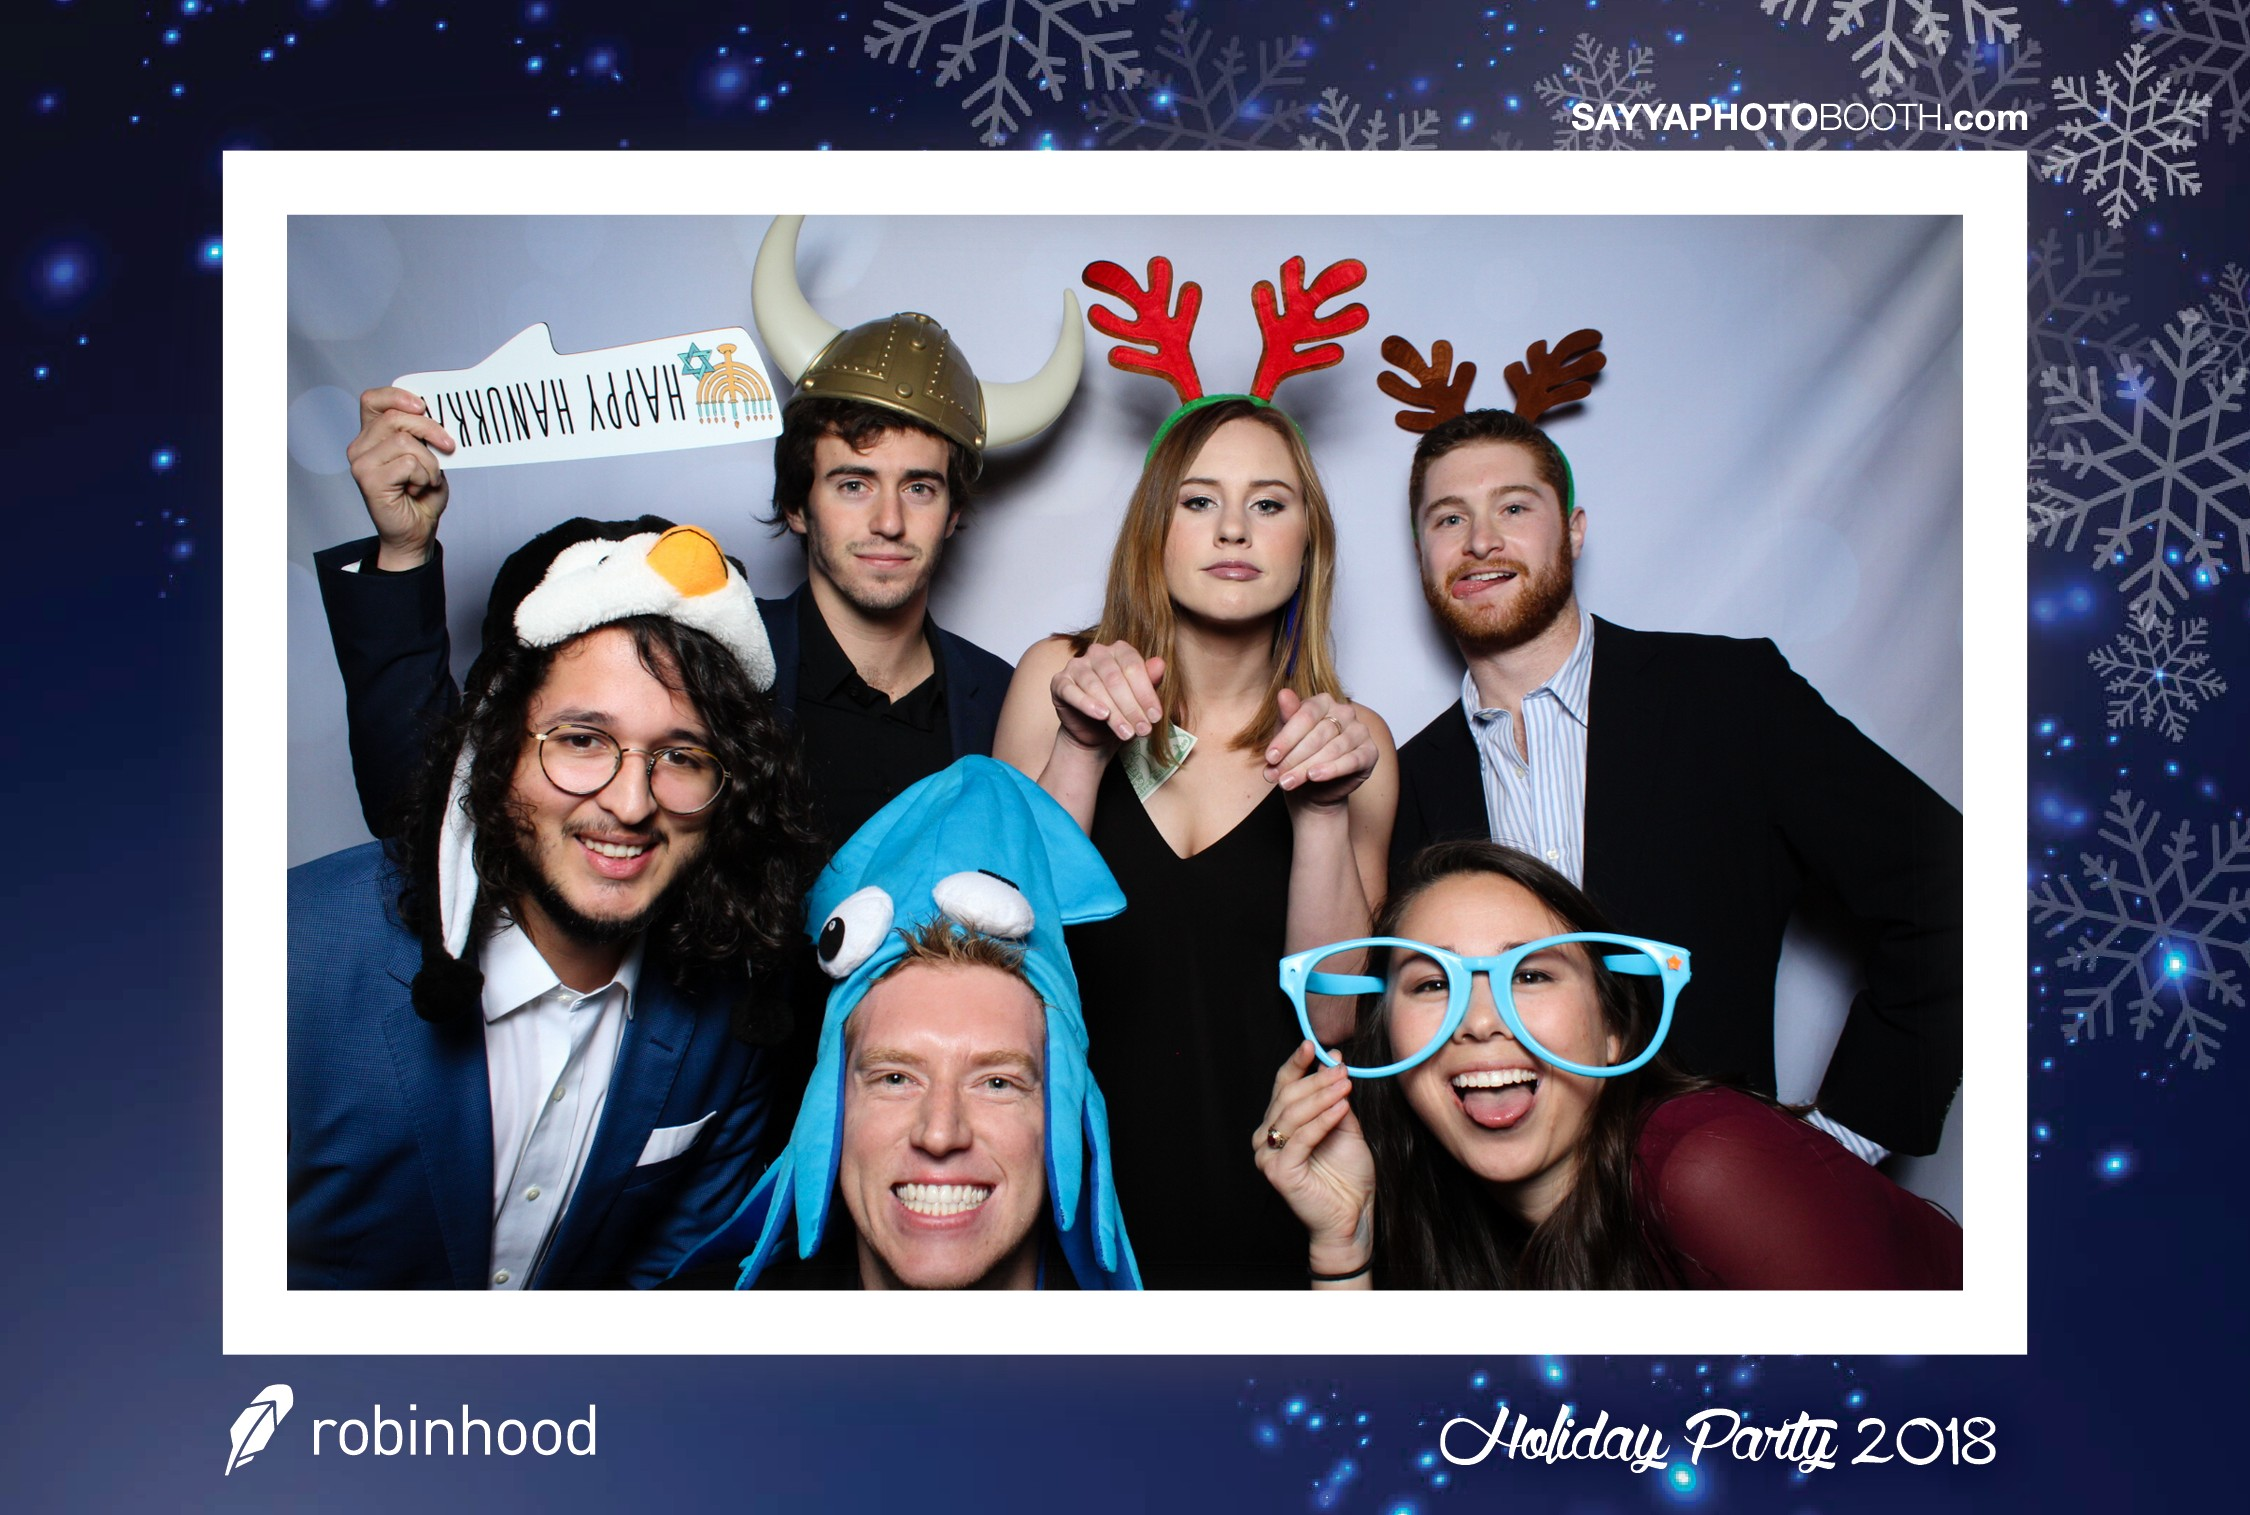 Robinhood Holiday Party 2018